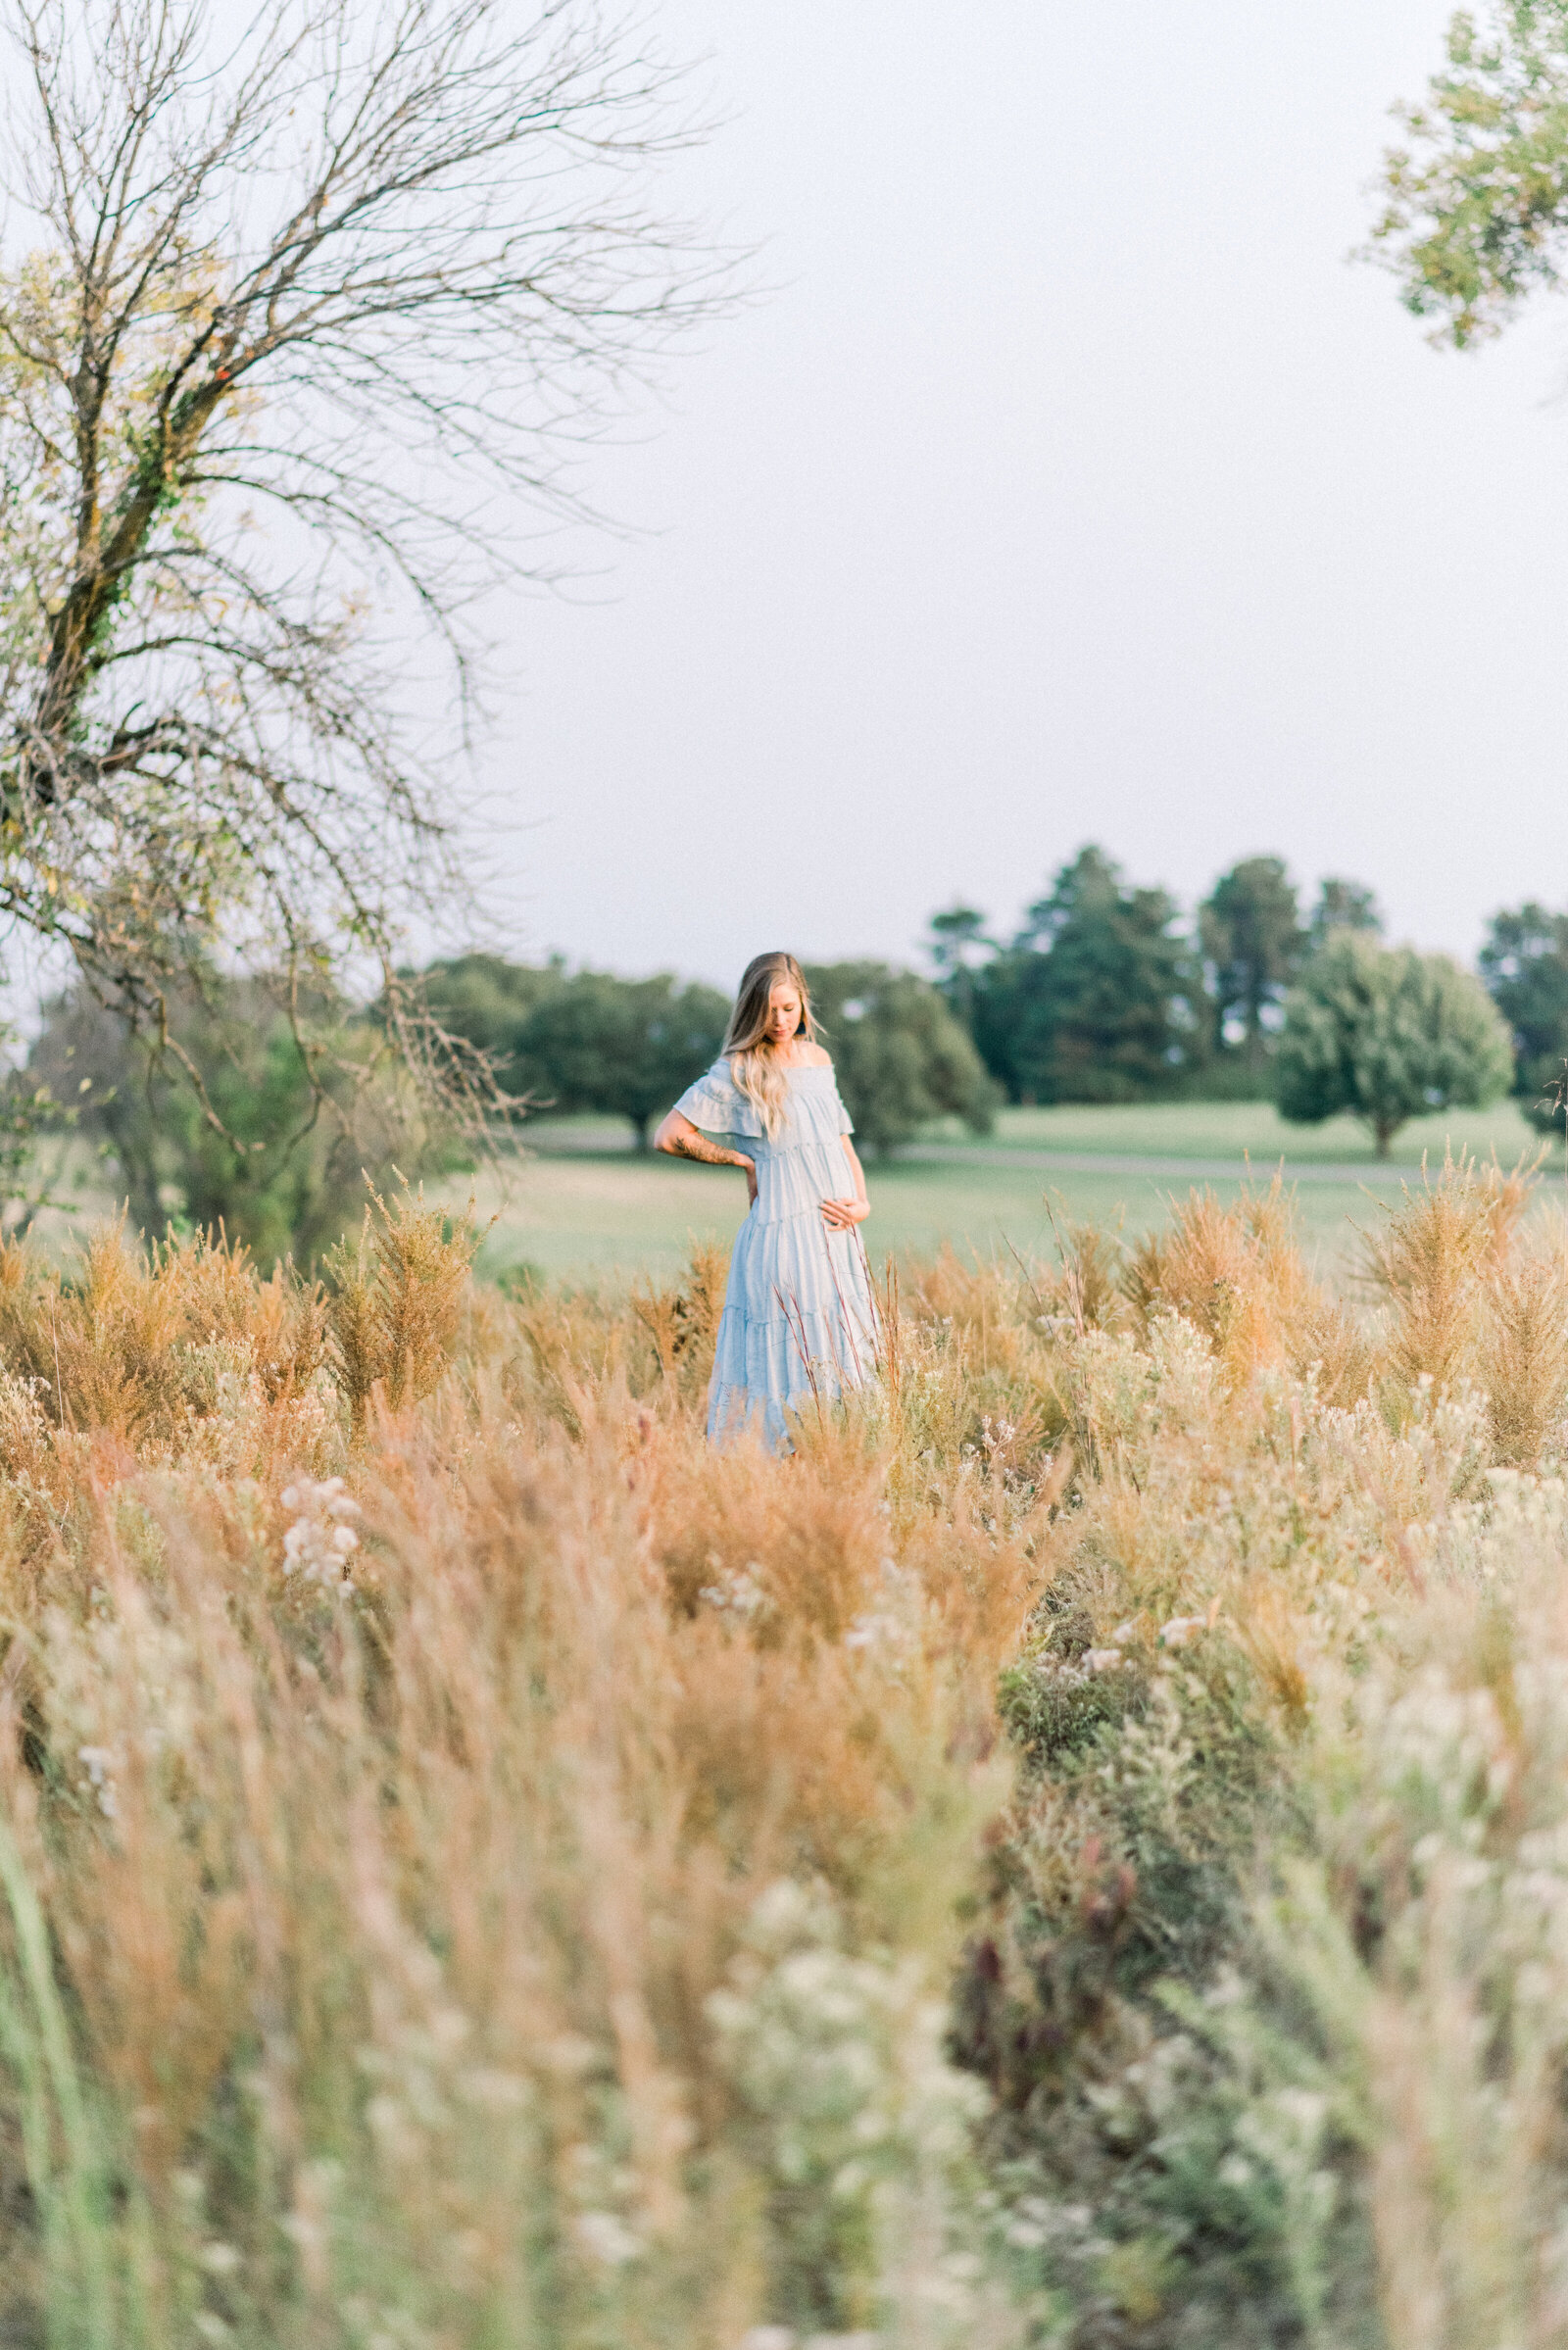 Sunrise_Maternity_Shawnee_Mission_Park_Kansas_City_Ashley2020-12